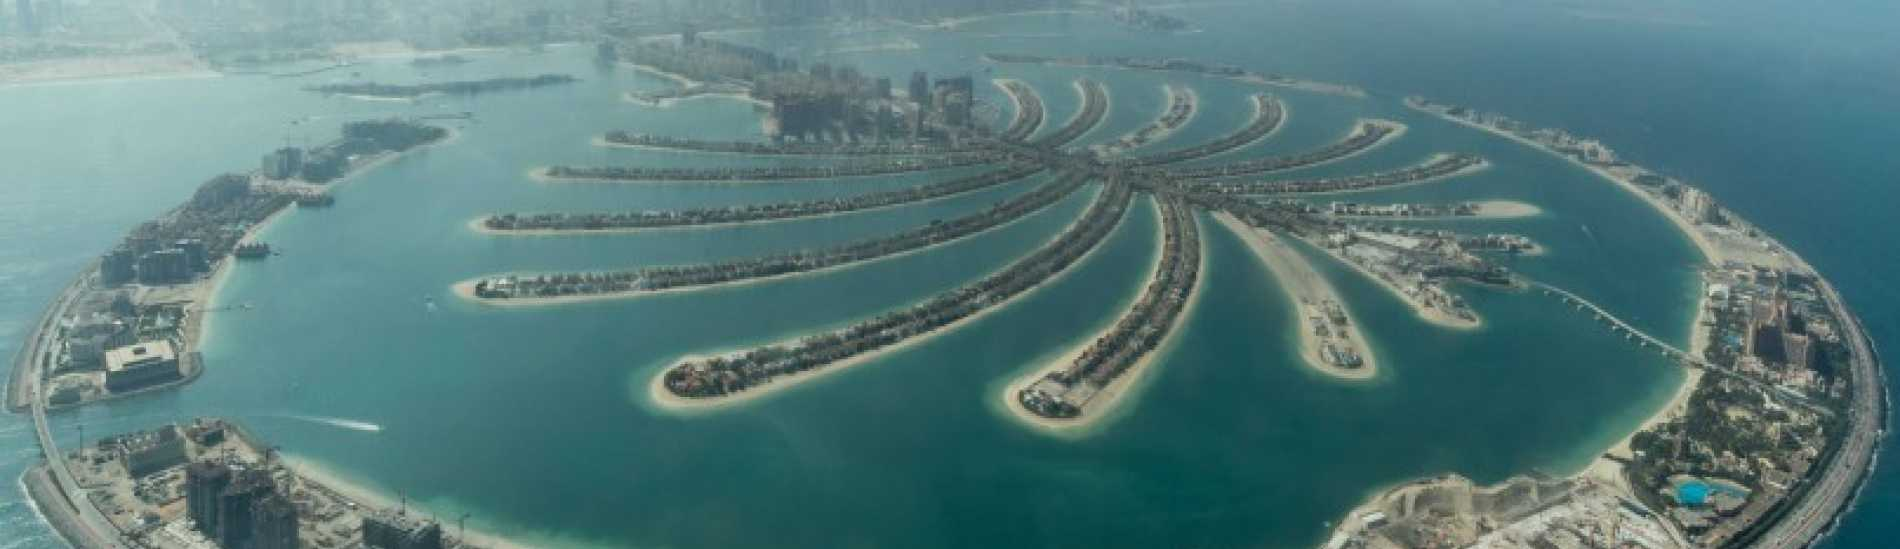 Palm Jumeirah: A Marvel of Engineering